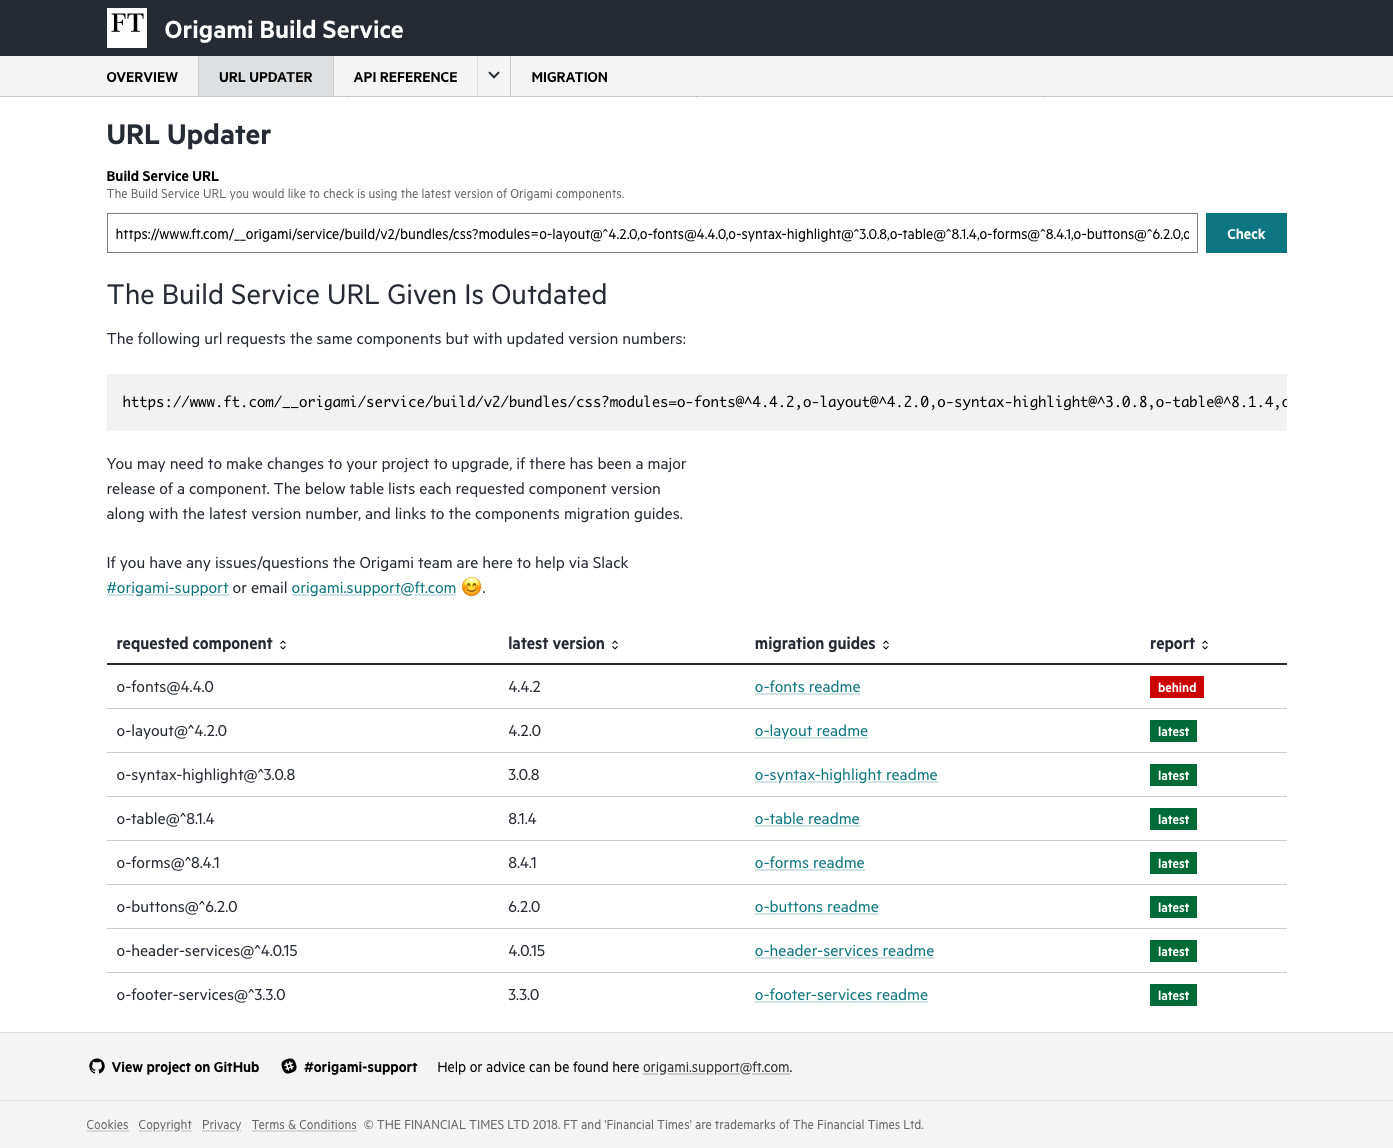 The Build Service updater. For a given Build Service URL it displays a table of requested components which shows the requested version, the latest version, whether it is out of date or not, and where to find migration guides to upgrade as required.